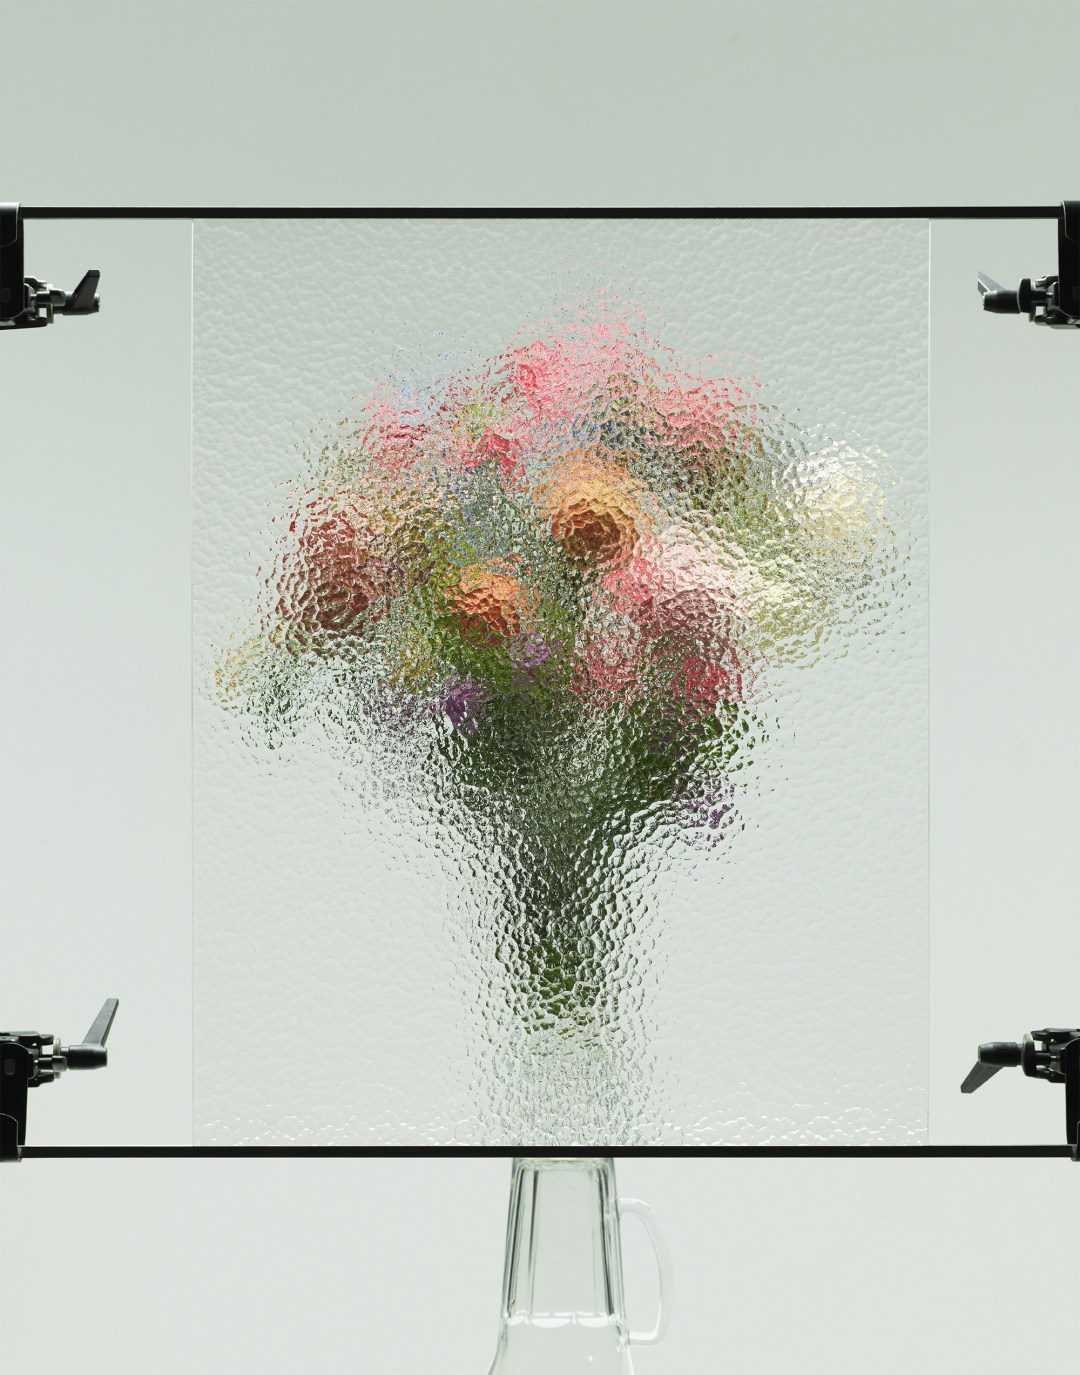 Sheets of Frosted Glass Obscure Floral Bouquets in a Photographic Series About Ambiguity